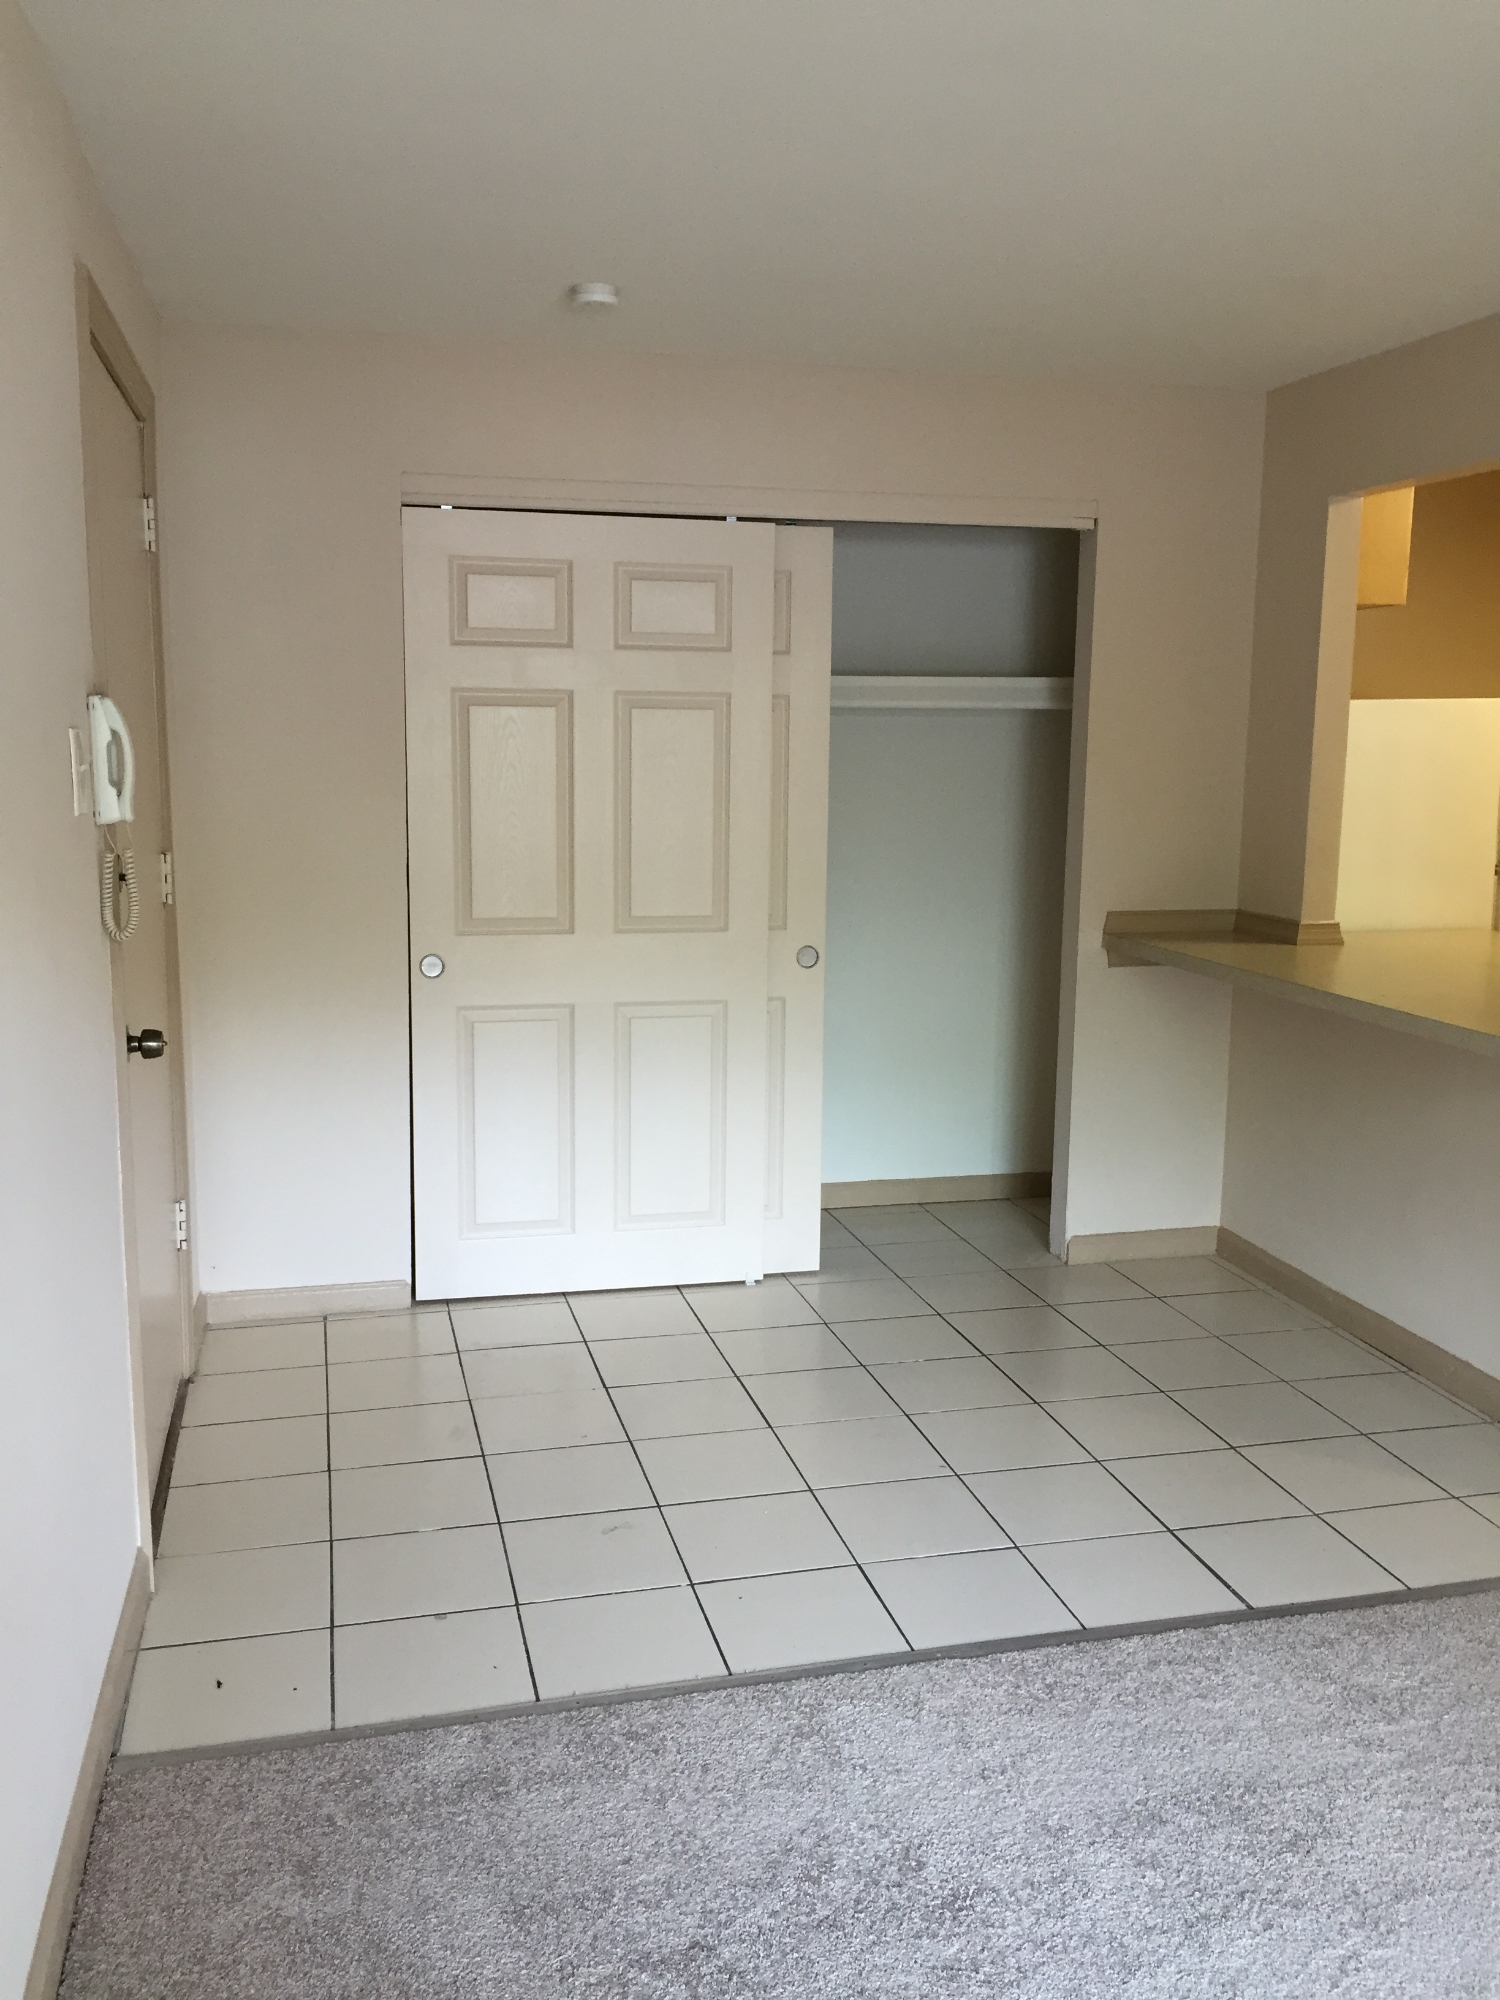 Not every apartment here looks exactly the same.Here is an example of another type of entrance space we offer.